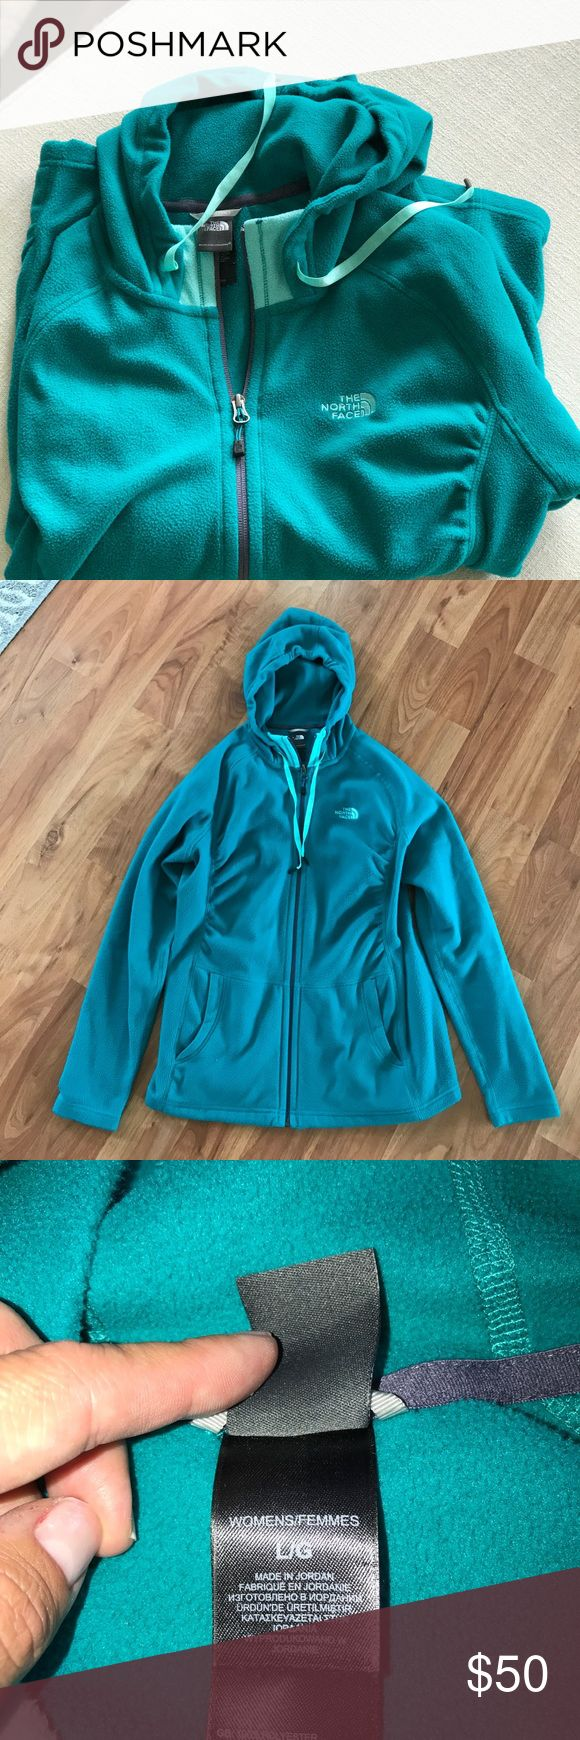 Women's North Face zip up fleece Like new condition, Large women's zip up fleece by The North Face. Color is a turquoise green with mint by the neck and drawstrings. Super warm and soft The North Face Tops Sweatshirts & Hoodies